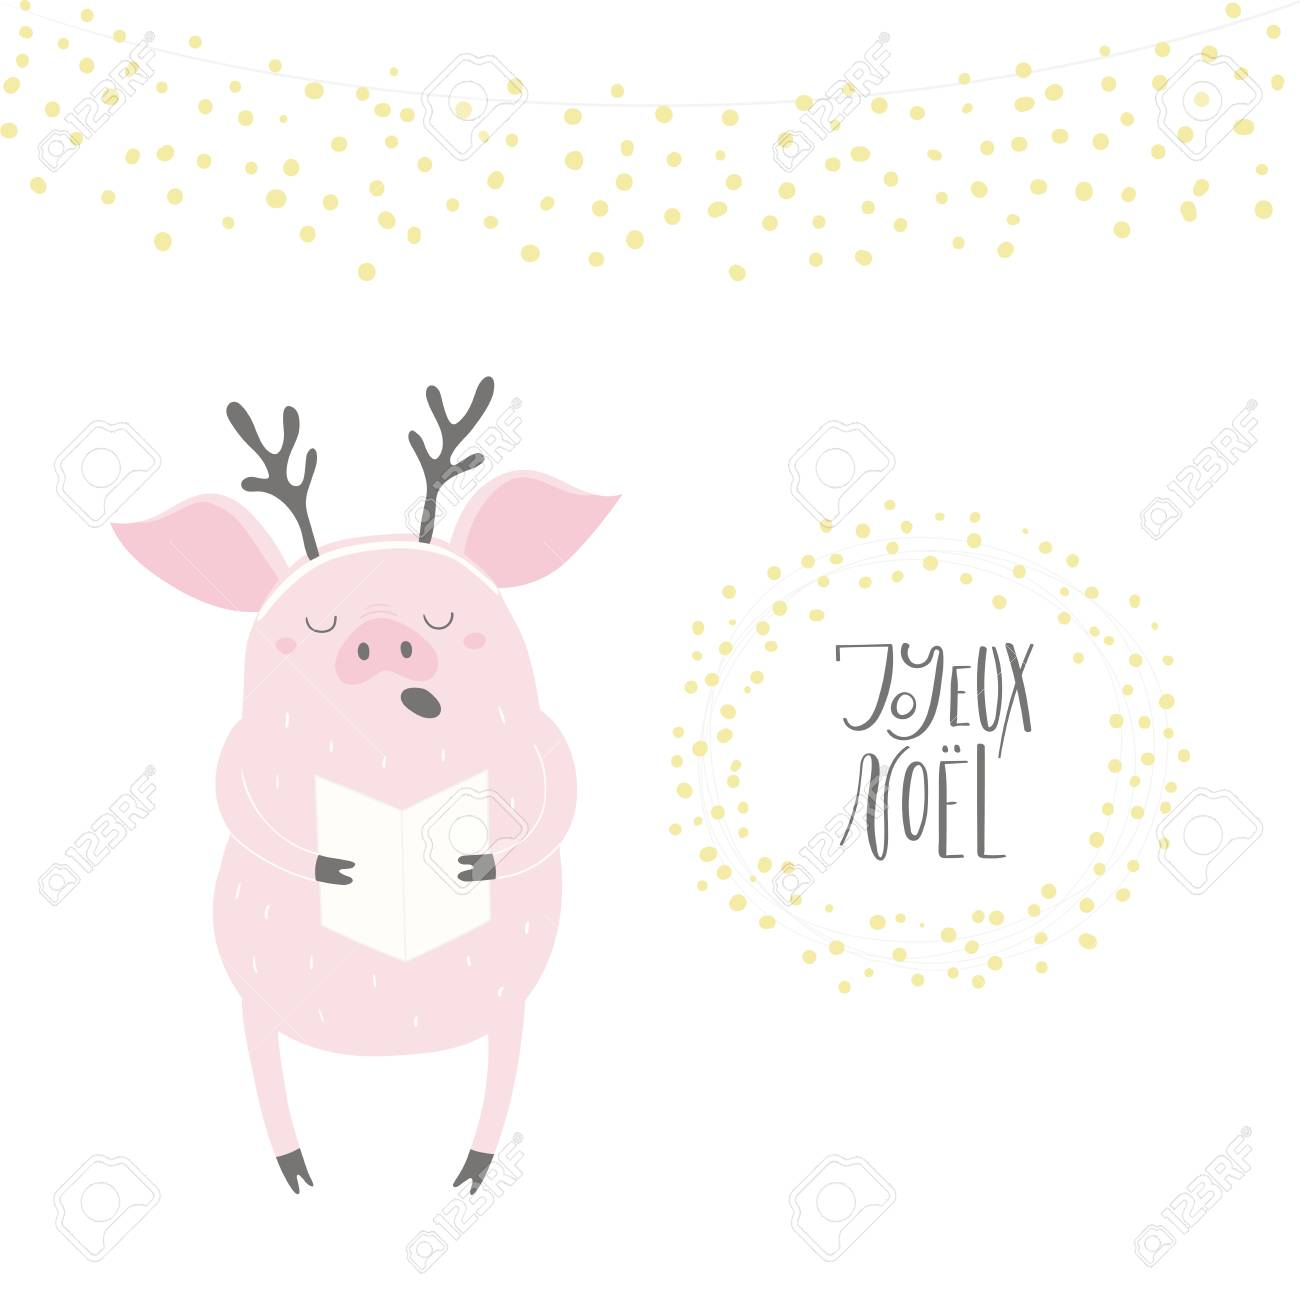 Joyeux Noel Clipart.Hand Drawn Vector Illustration Of A Cute Funny Singing Pig With